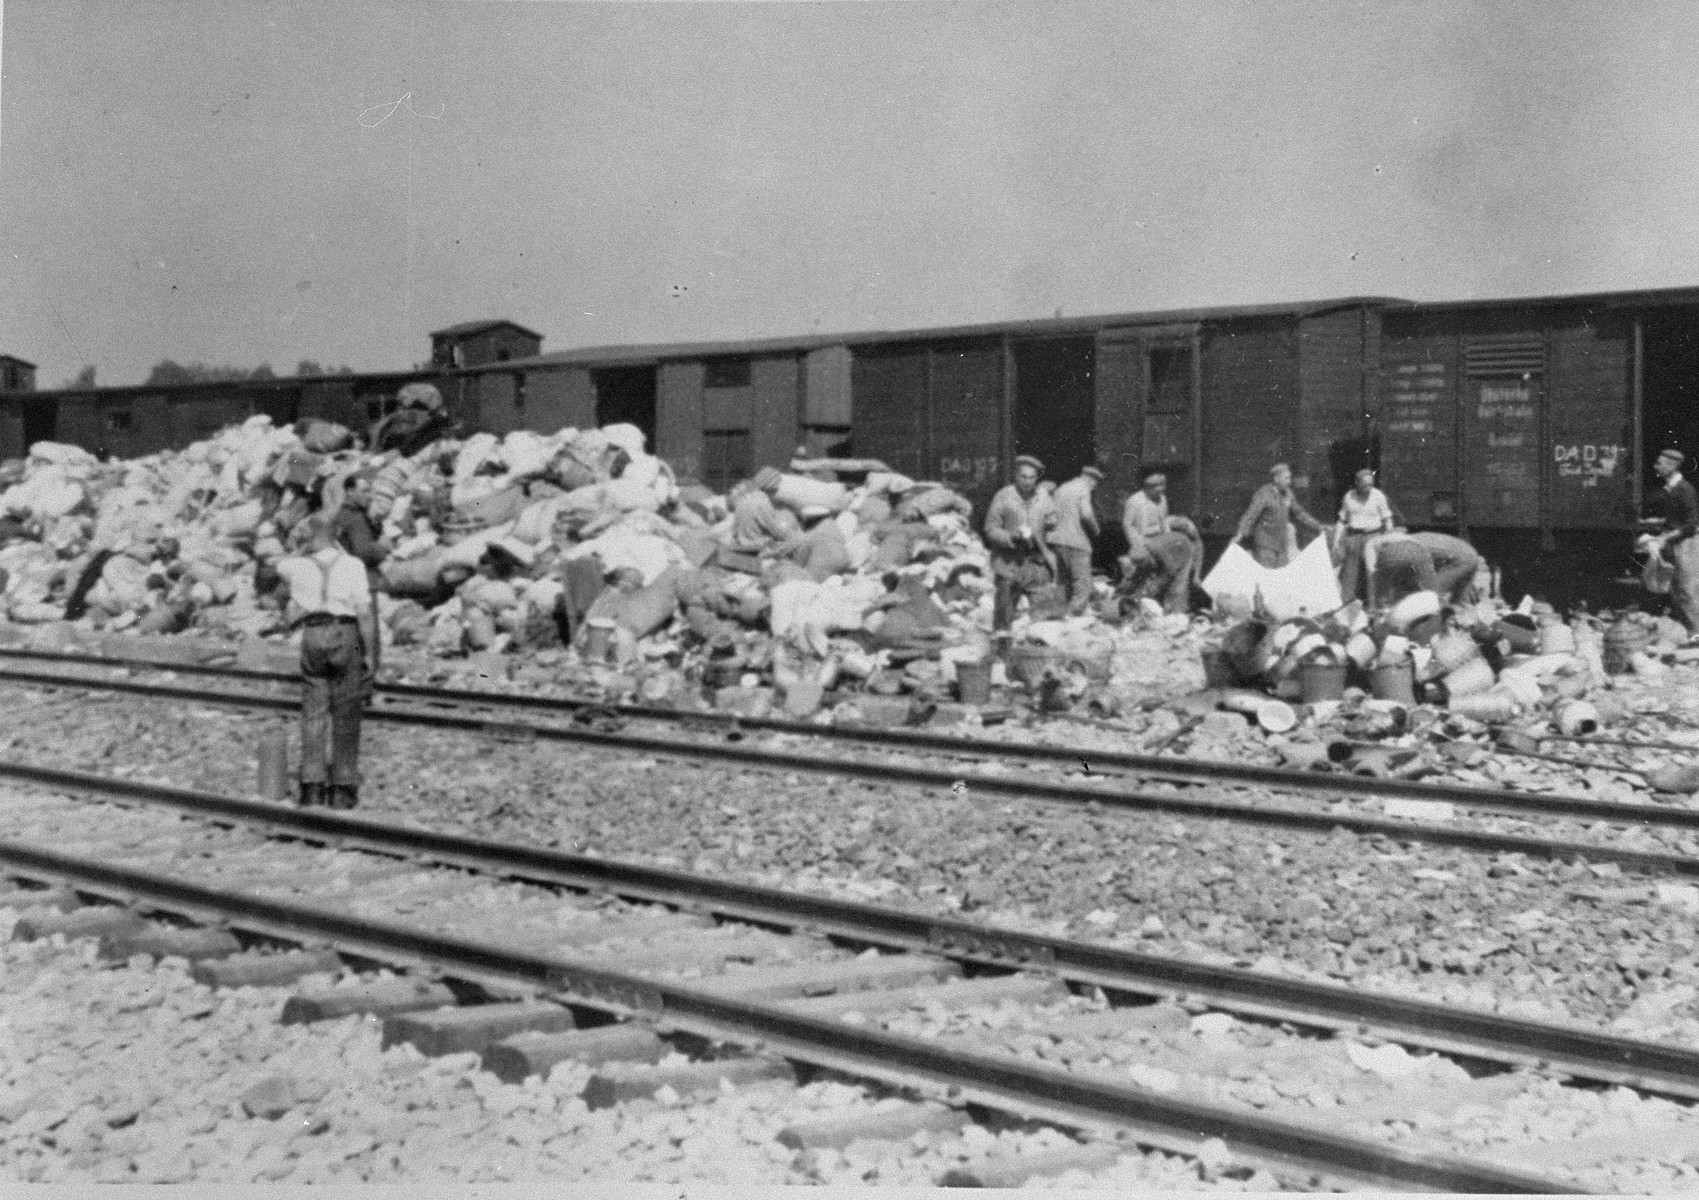 "Prisoners in the Aufräumungskommando (order commandos) sort through a mound of personal belongings confiscated from the arriving transport of Jews from Subcarpathian Rus.    Among those working near the train is Chaim Rephael from Salonika.  The camp prisoners came to refer to the looted property as ""Canada,"" associating it with the riches symbolized by Canada.  The members of this commando were almost exclusively Jews.  ""Canada"" storage facilities occupied several dozen barracks and other buildings around the camp.  The looted property was funneled from Auschwitz through an extensive distribution network that served many individuals and various economic branches of the Third Reich."